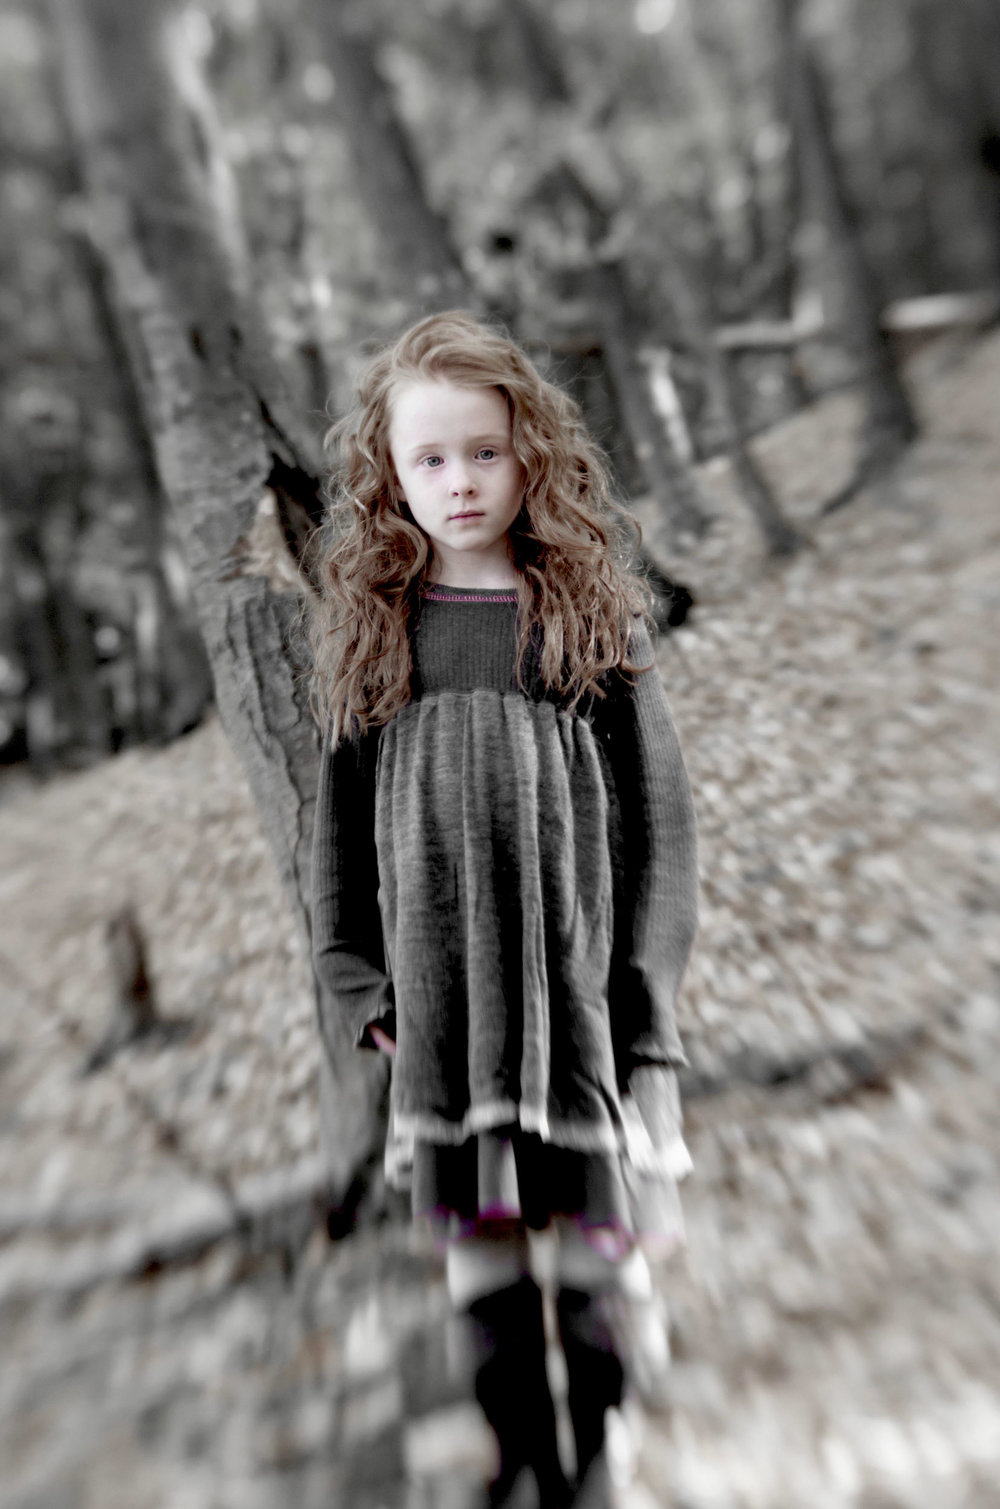 Maura Wayman Photography, Photography, Corporate Photography, stock, stock images, Massachusetts, Boston, Metro West, Wellesley, child, girl, woods, scary, red hair, selective focus, dreamy, fantastic,